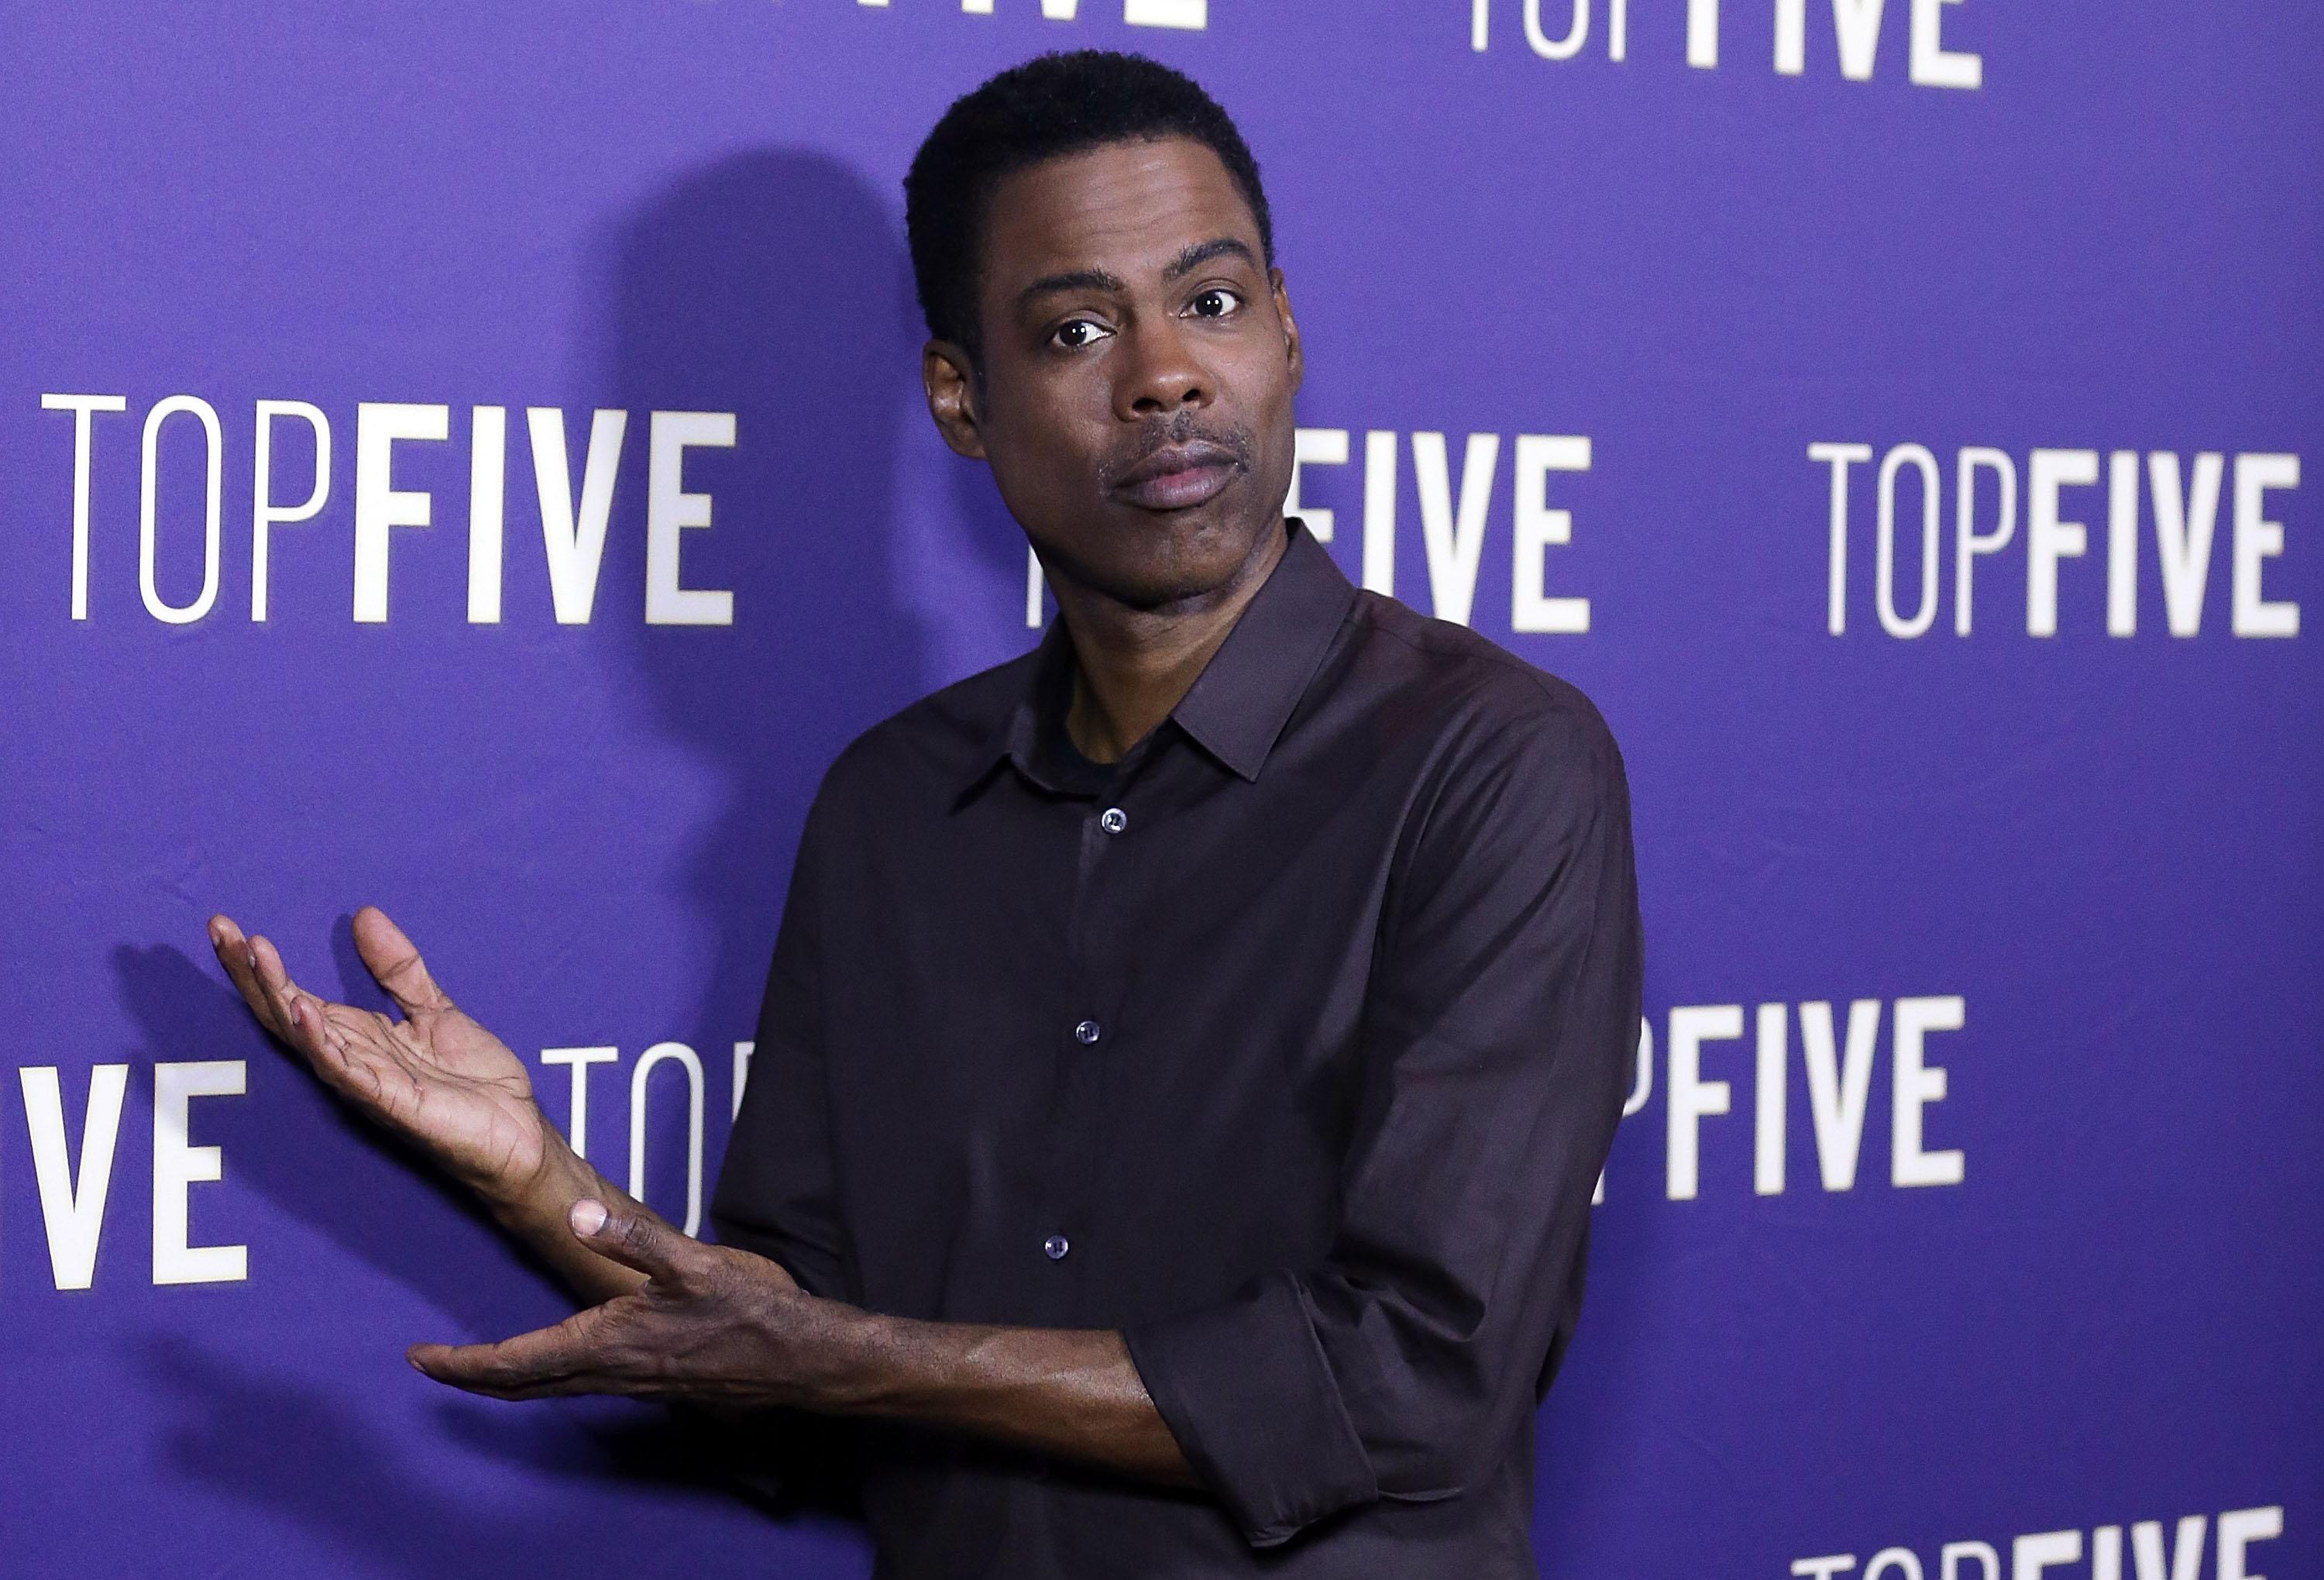 Chris Rock says he was stopped by police